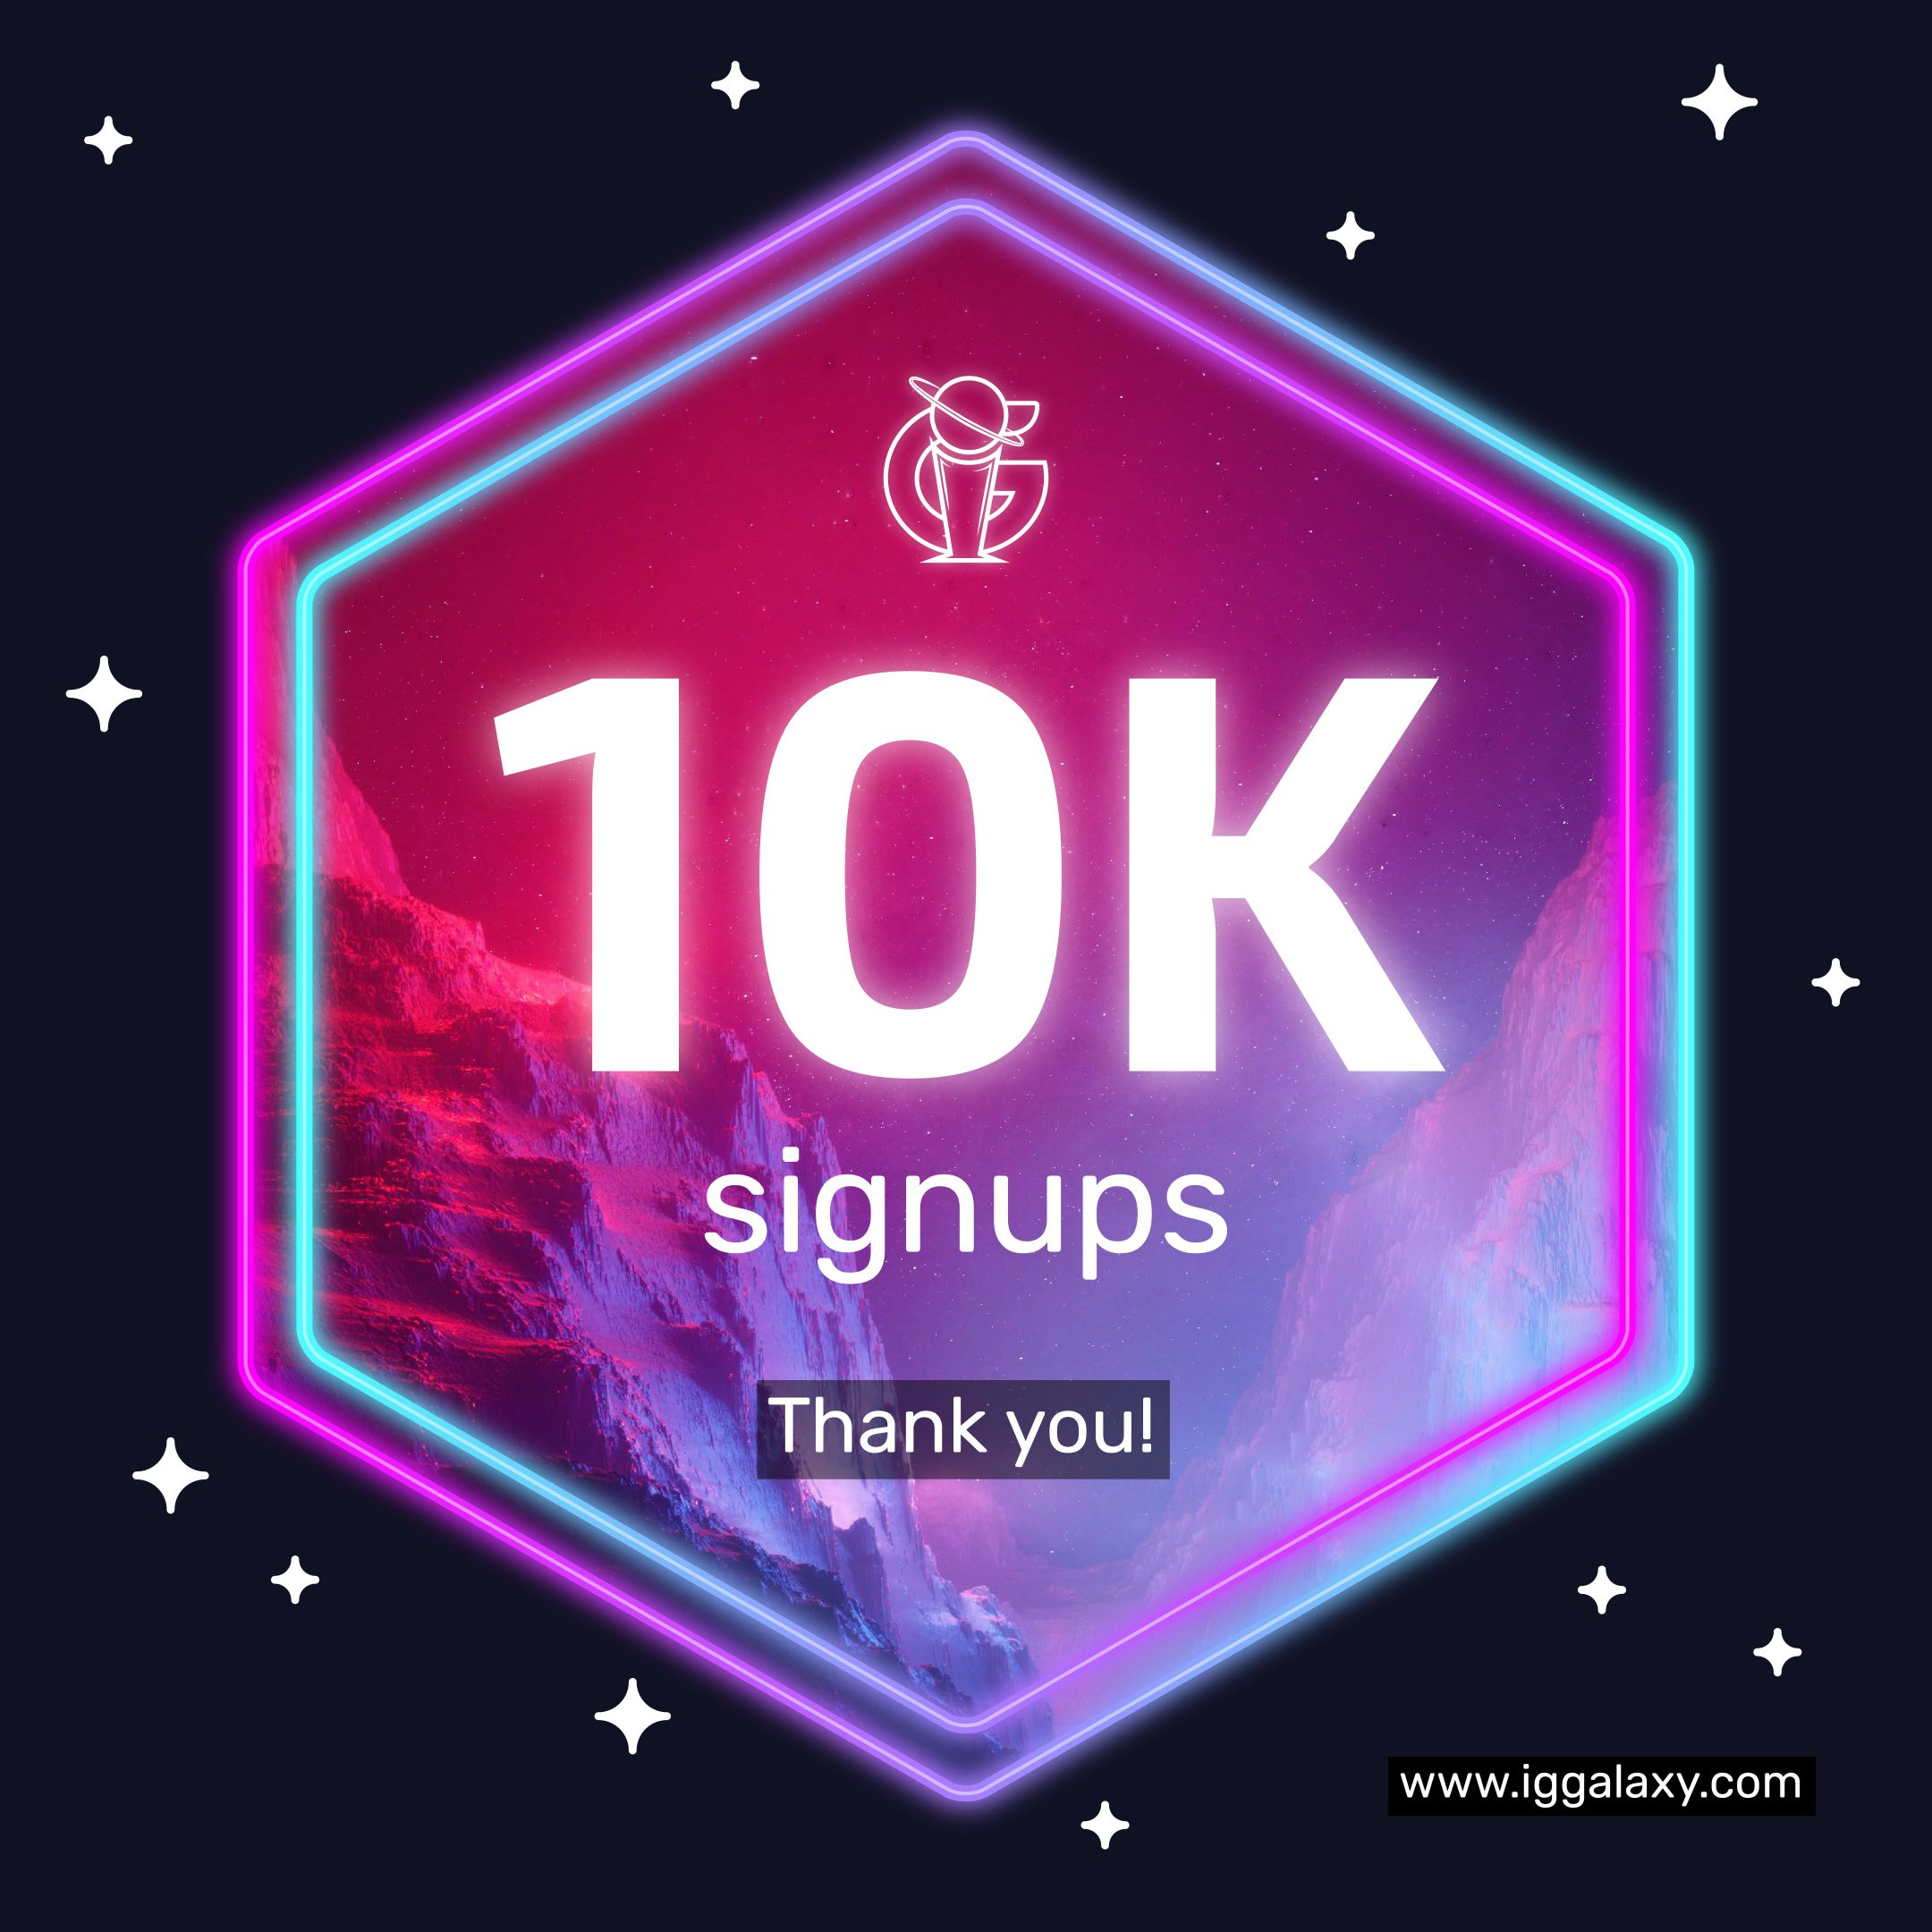 IGGalaxy reaches 10,000 sign ups!